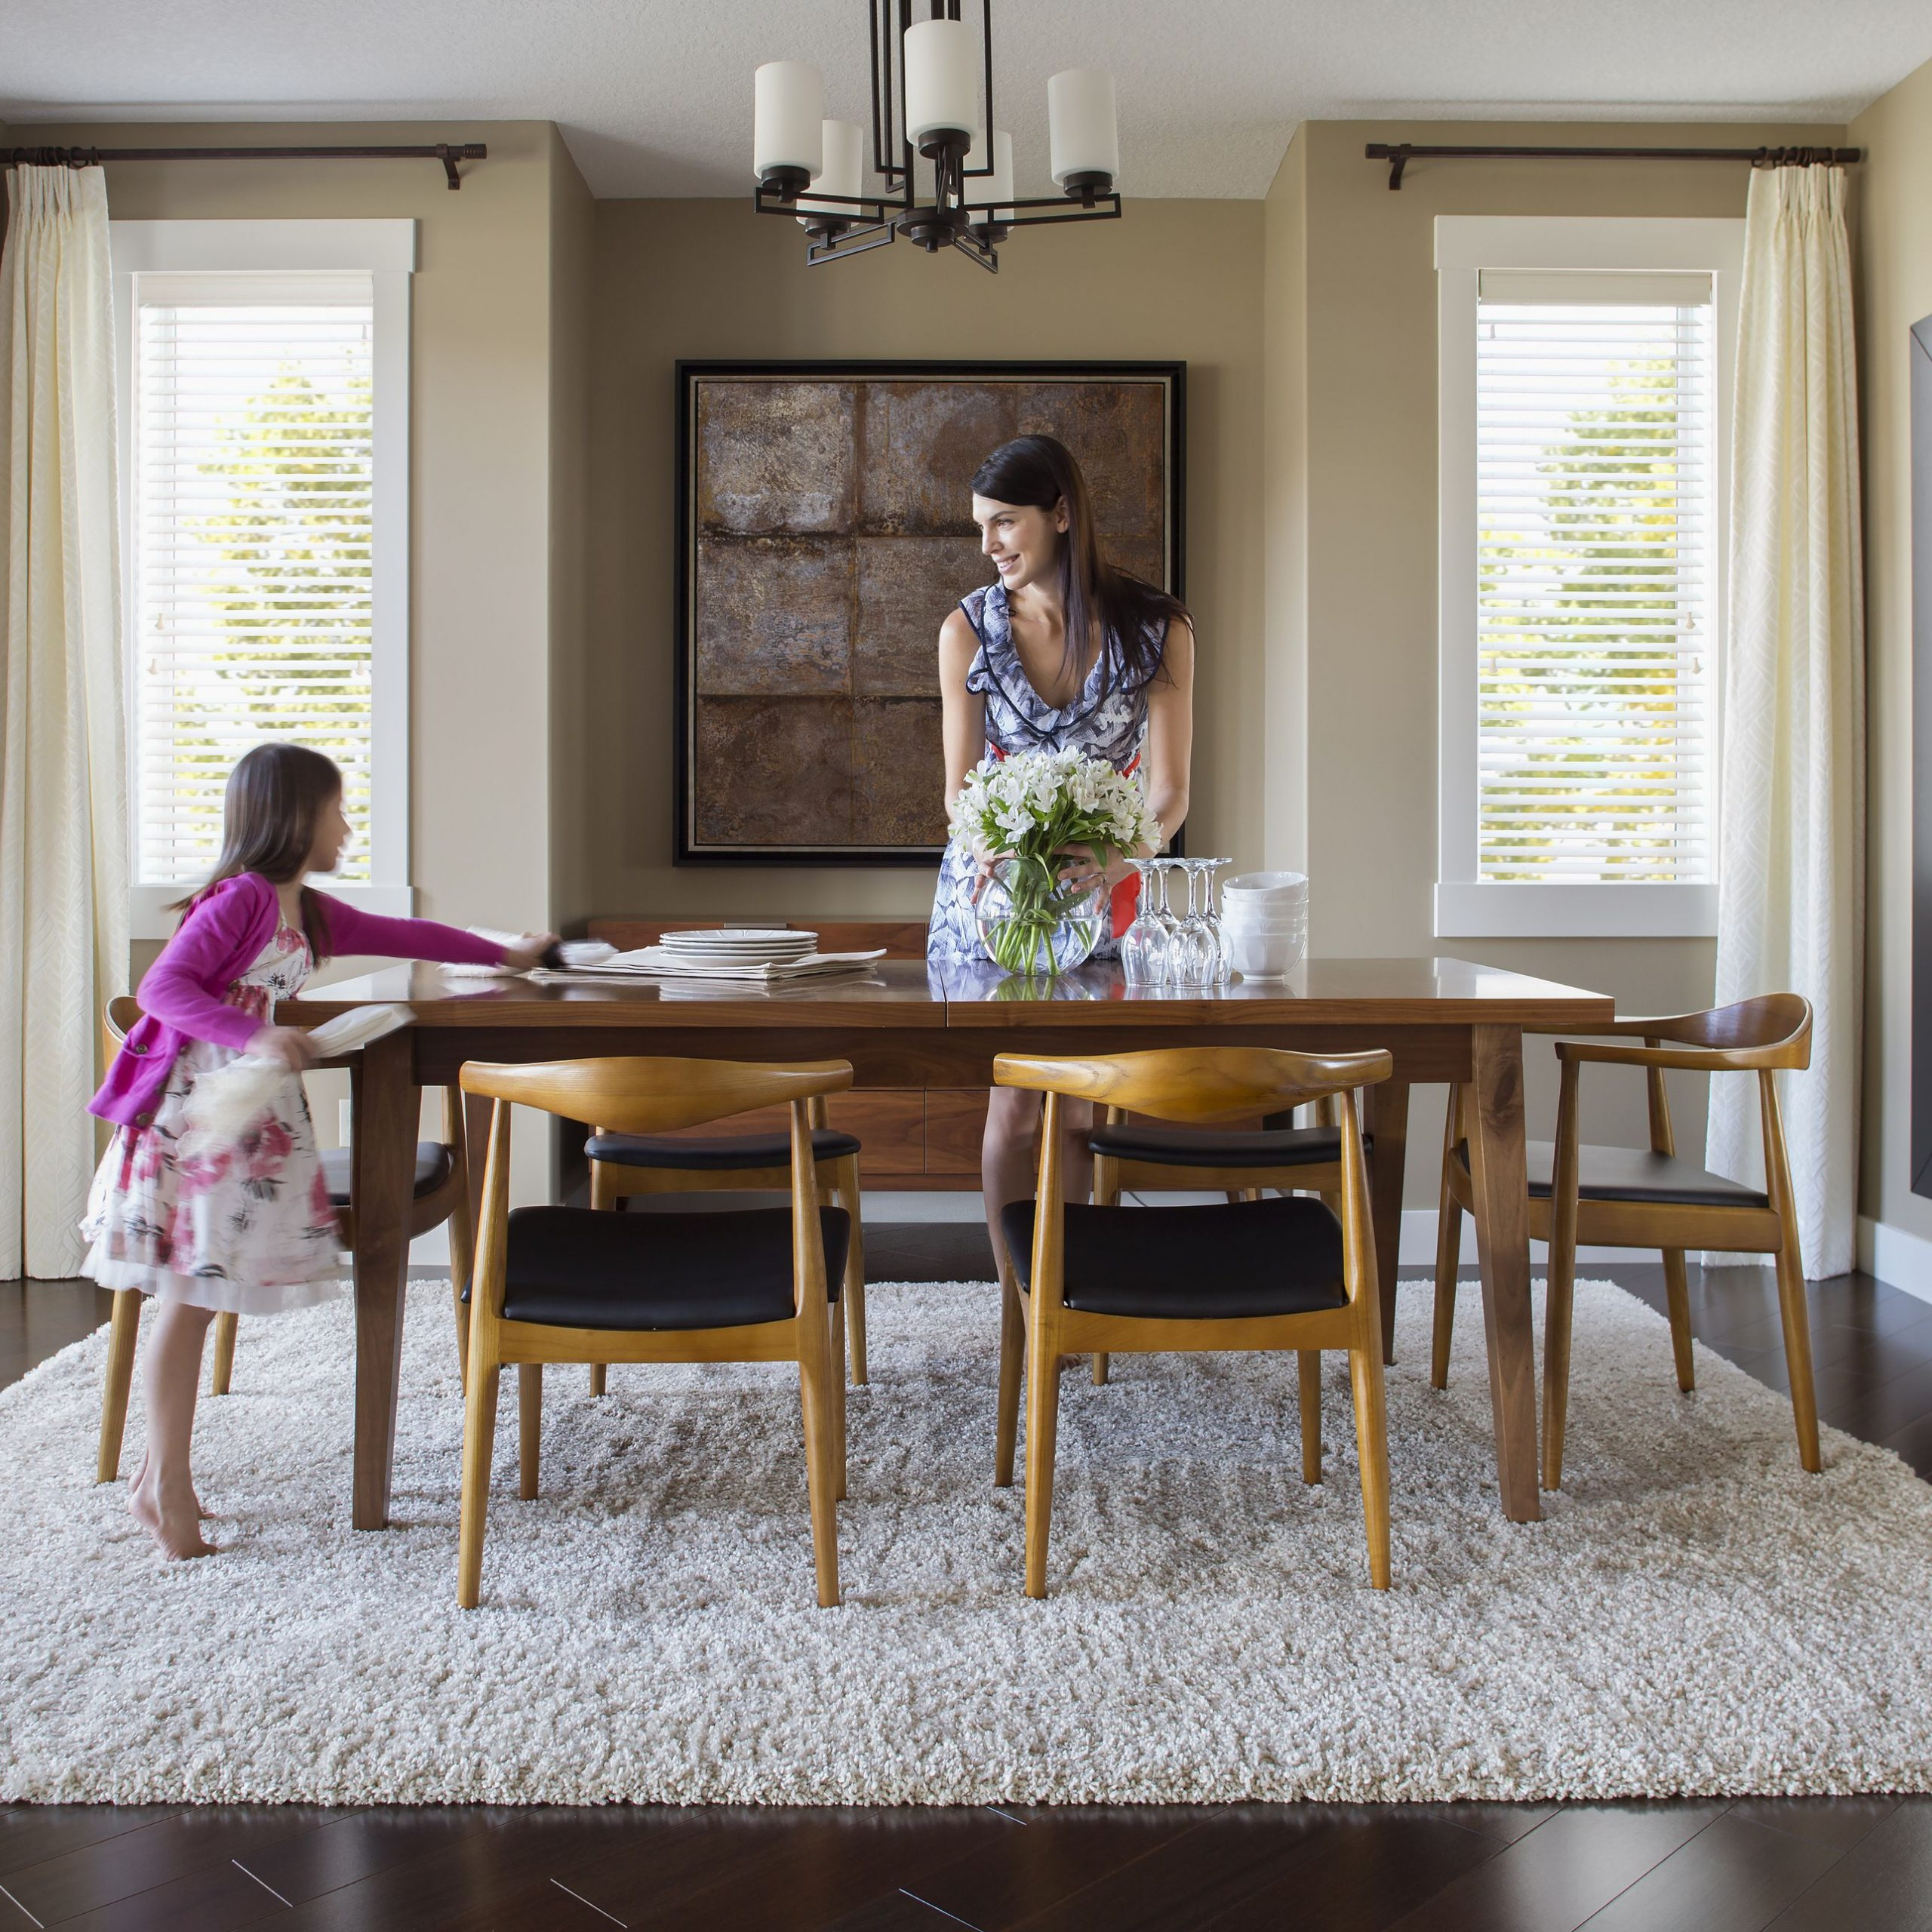 How To Choose Chairs For Your Dining Table Intended For Well Liked Distressed Walnut And Black Finish Wood Modern Country Dining Tables (View 19 of 30)